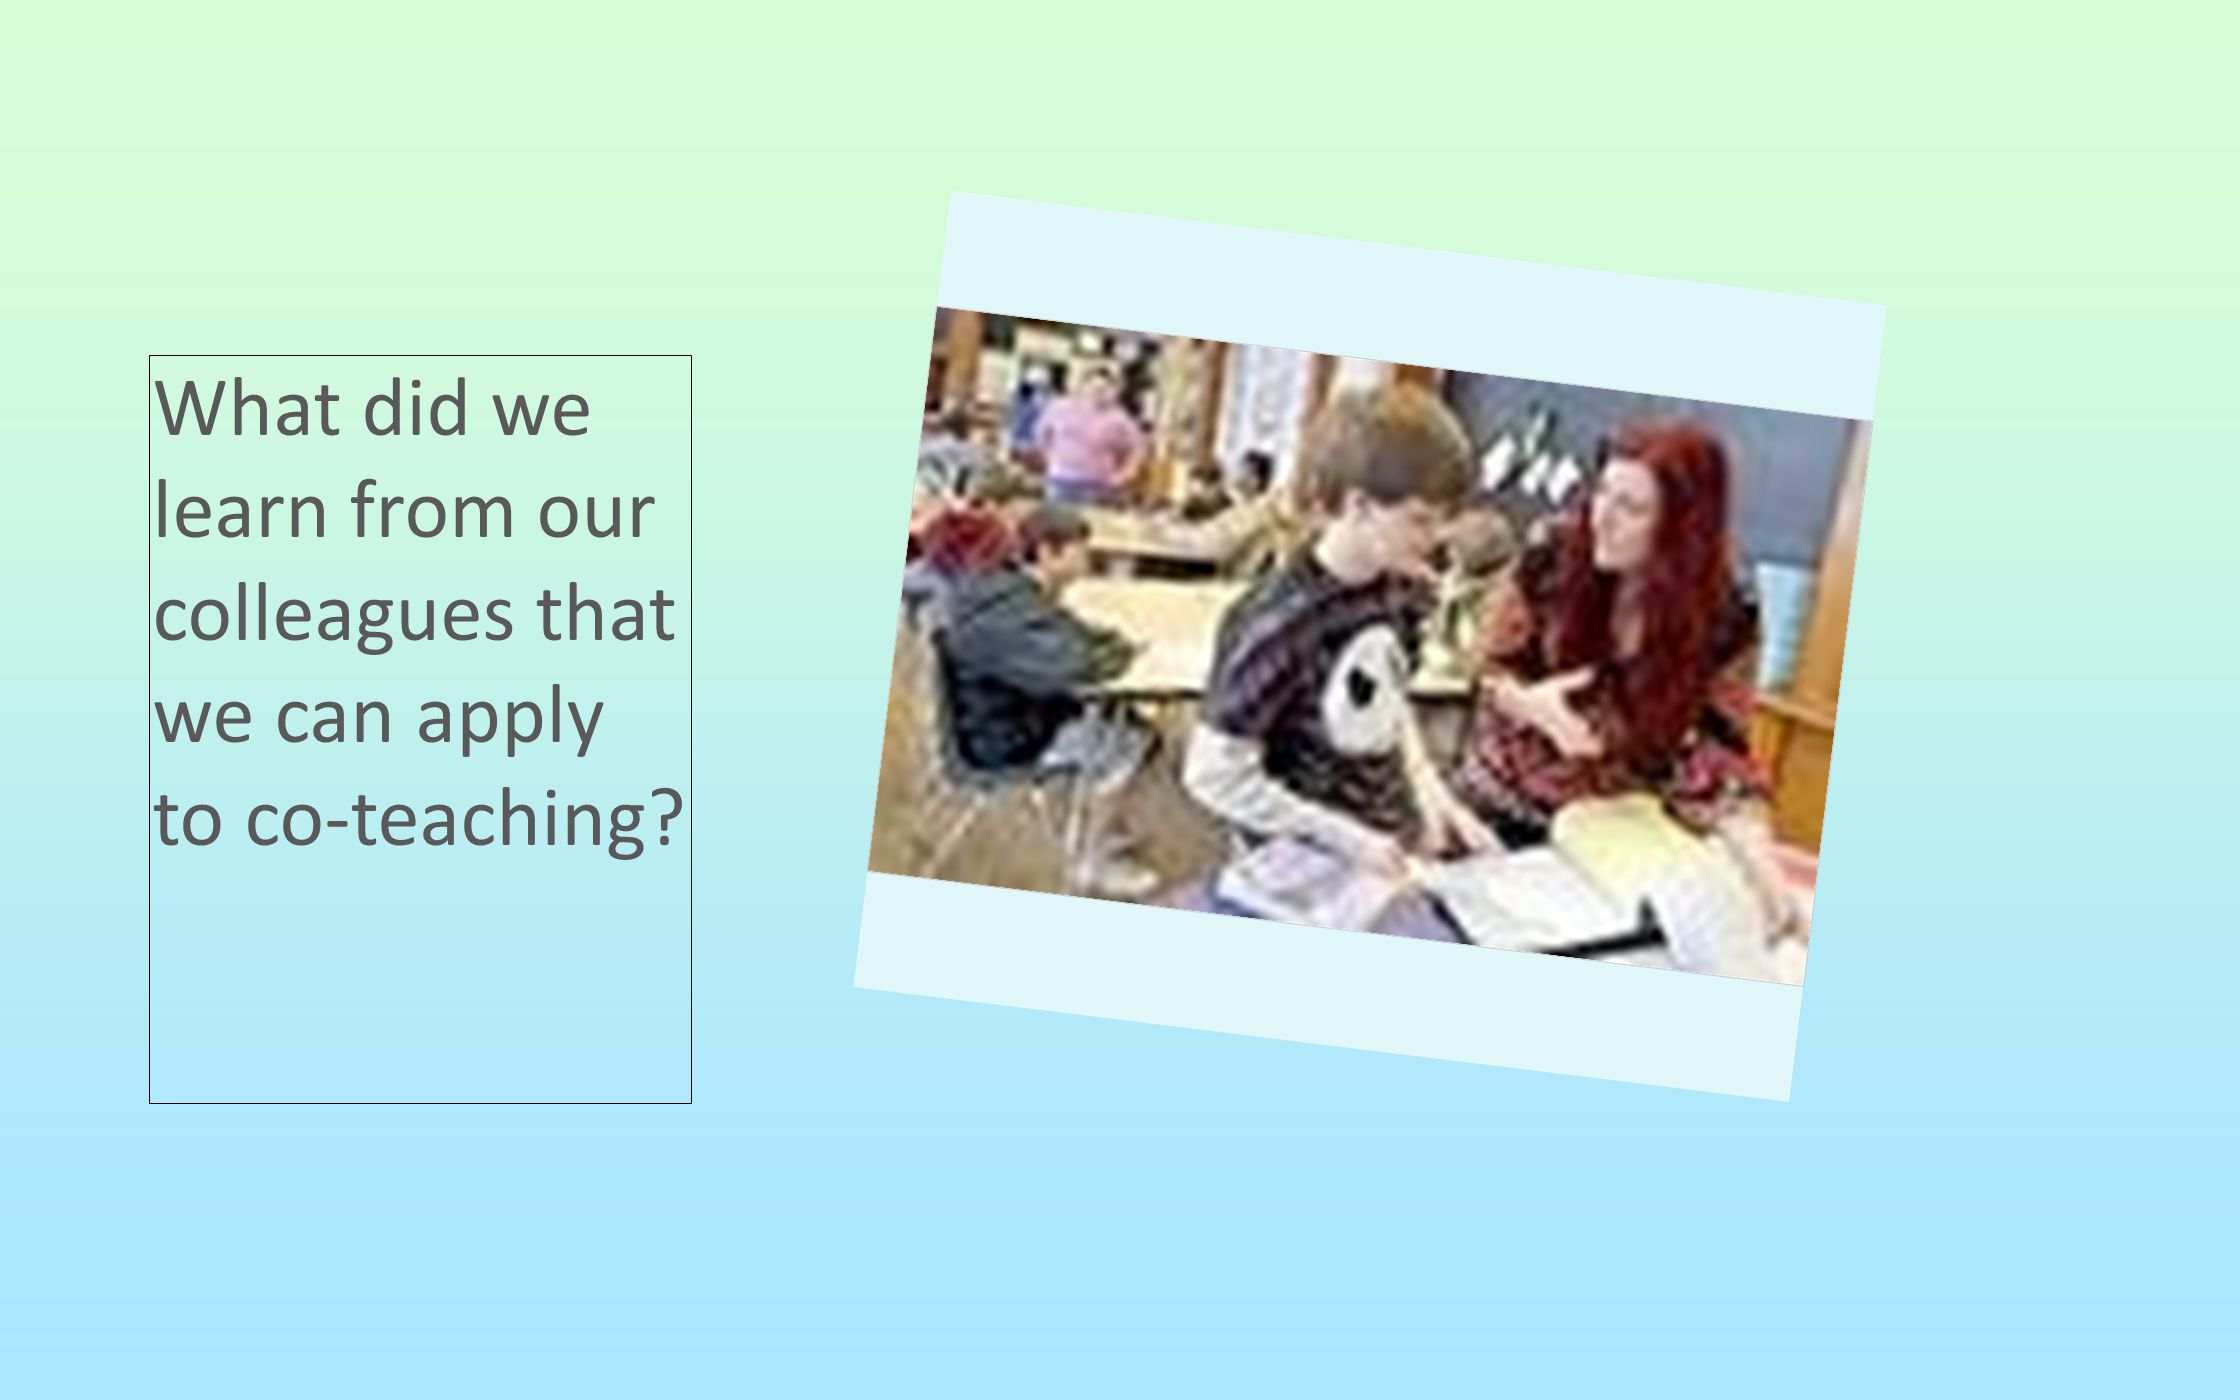 What did we learn from our colleagues that we can apply to co-teaching